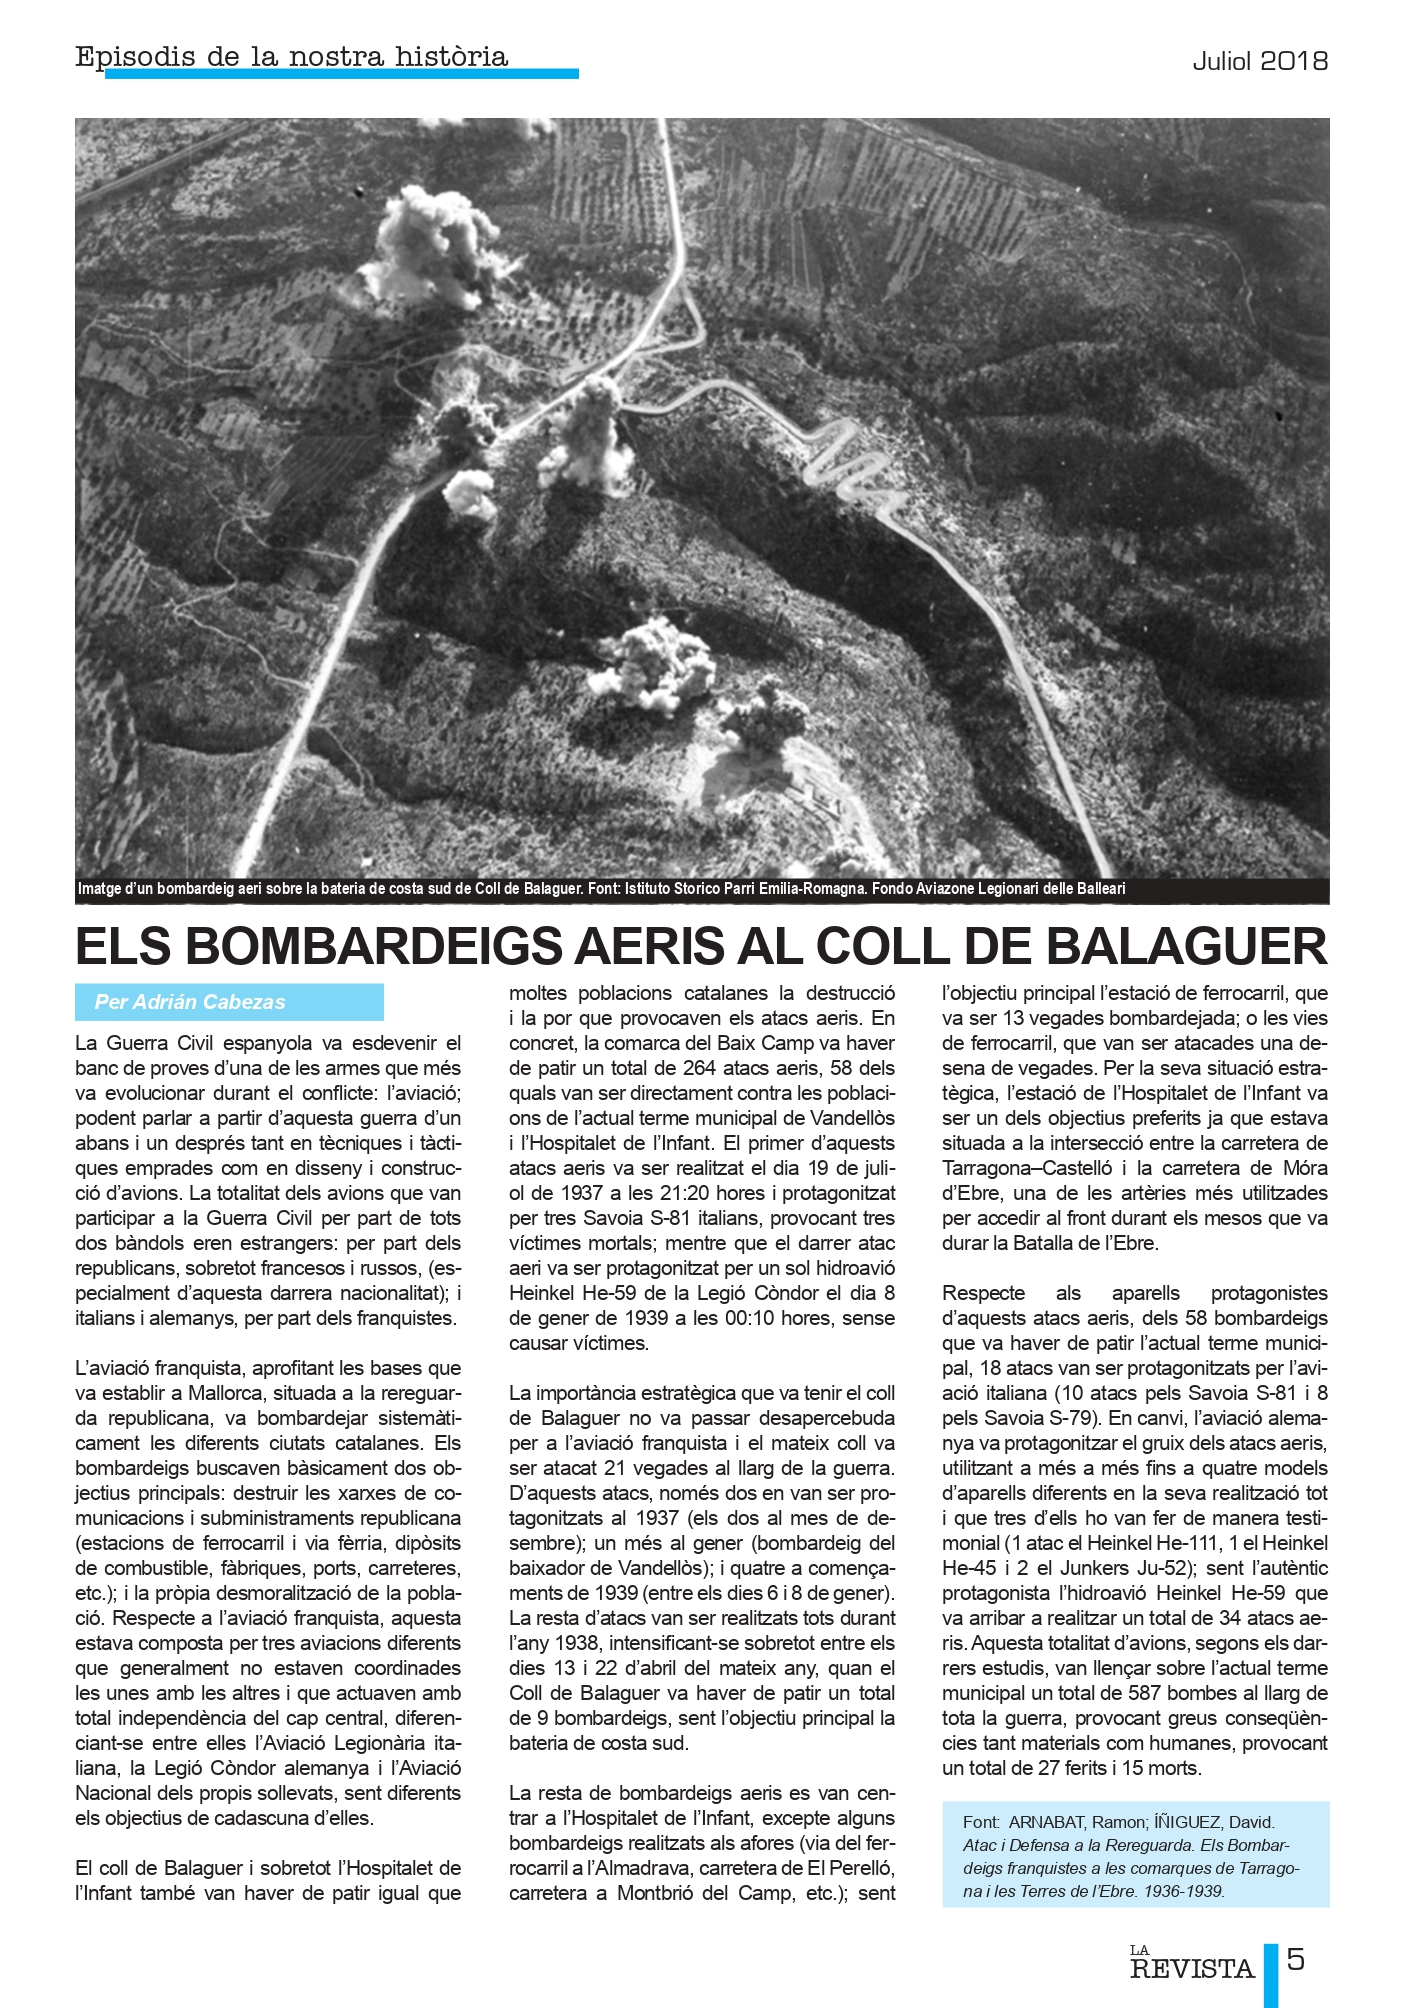 Article Coll de Balaguer_pages-to-jpg-0001